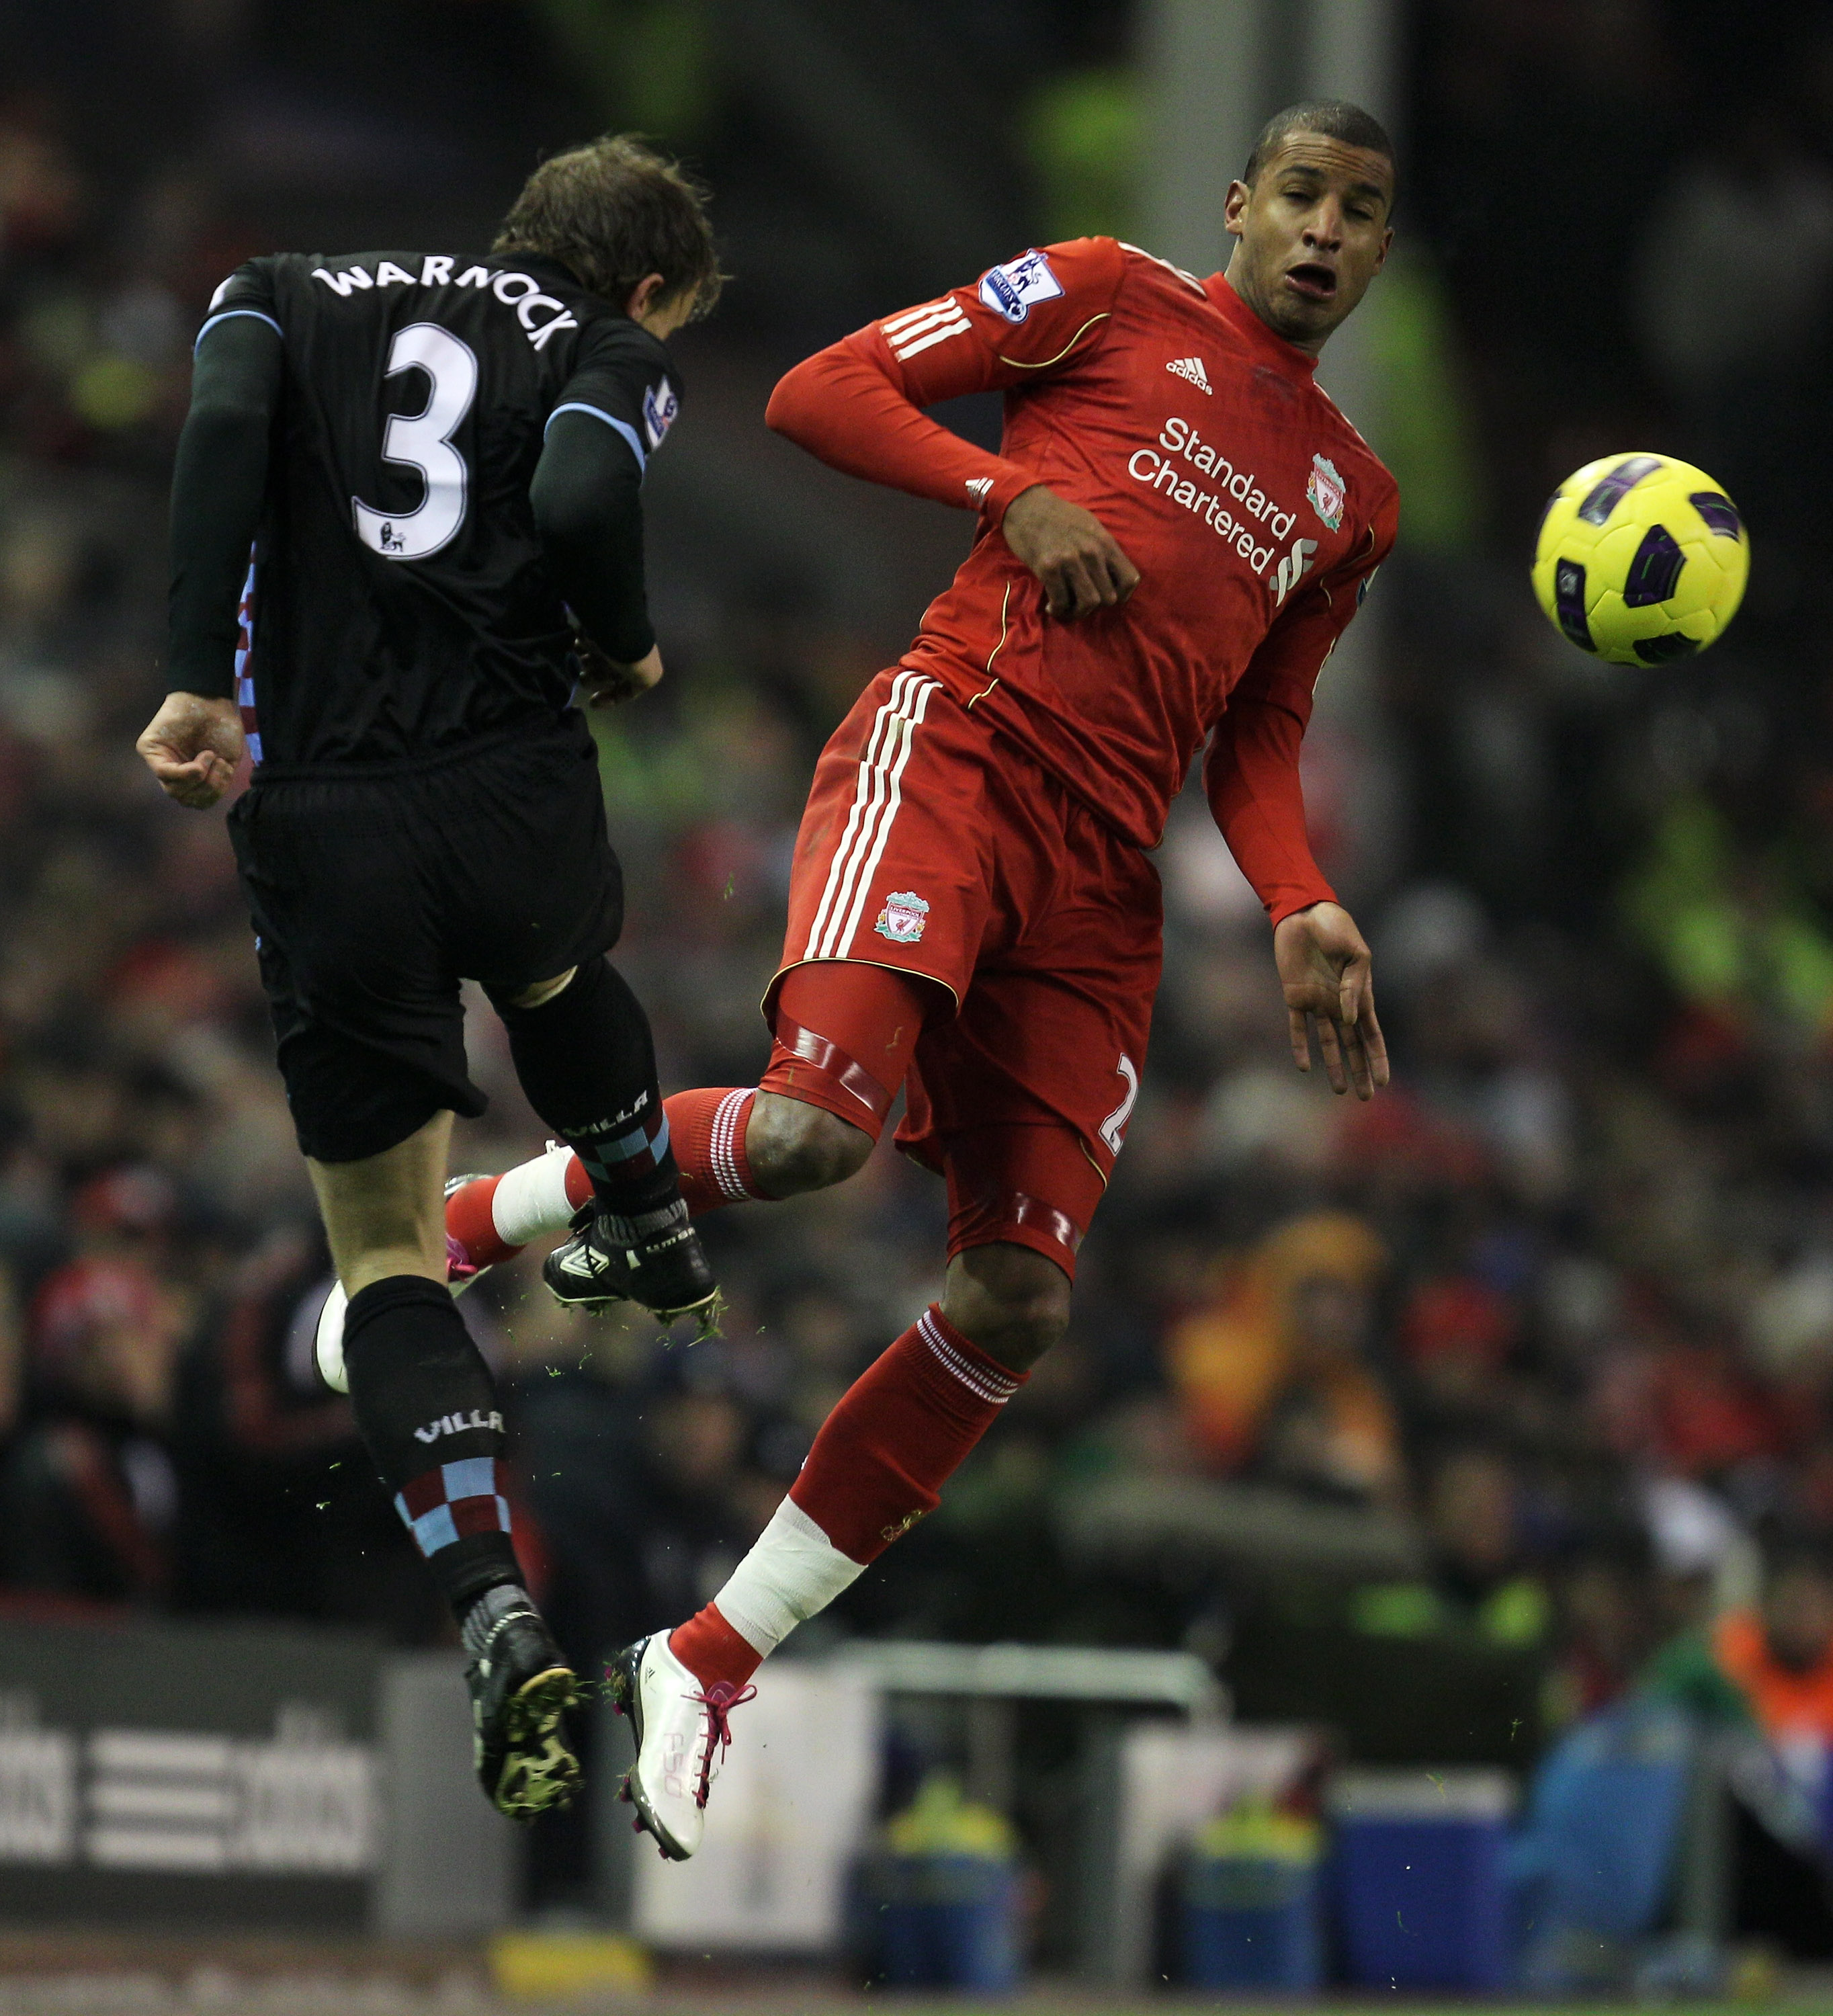 LIVERPOOL, ENGLAND - DECEMBER 06:  Stephen Warnock of Aston Villa competes with David Ngog of Liverpool during the Barclays Premier League match between Liverpool and Aston Villa at Anfield on December 6, 2010 in Liverpool, England. (Photo by Mark Thompso